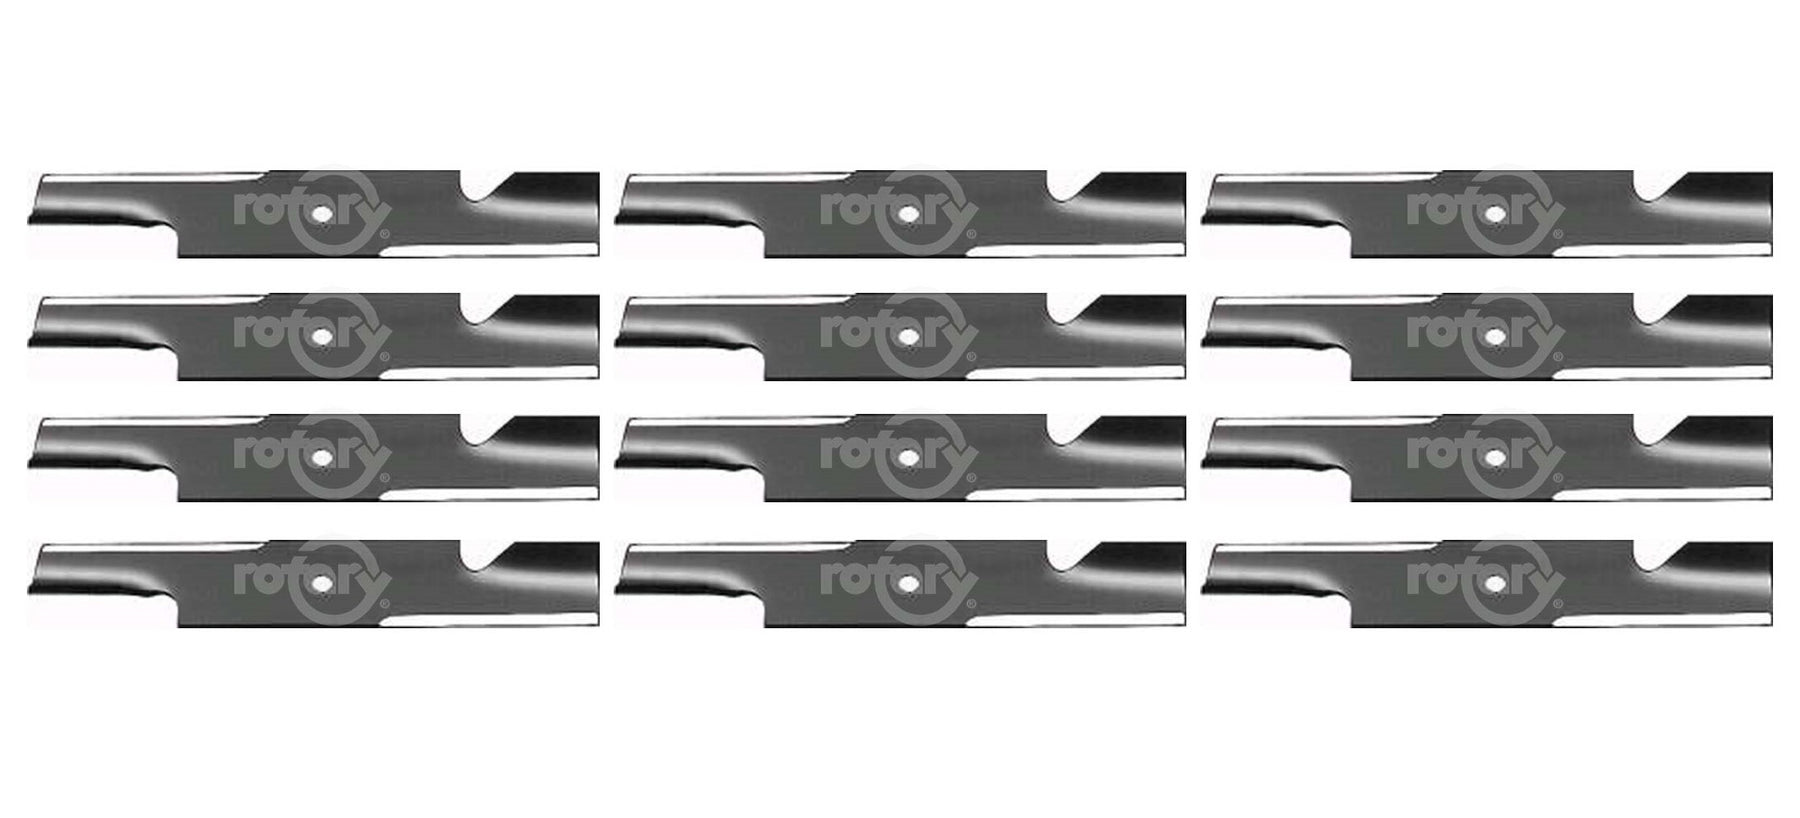 12 Pack Lawn Mower Blades Fits Gravely GDU10231 00450300